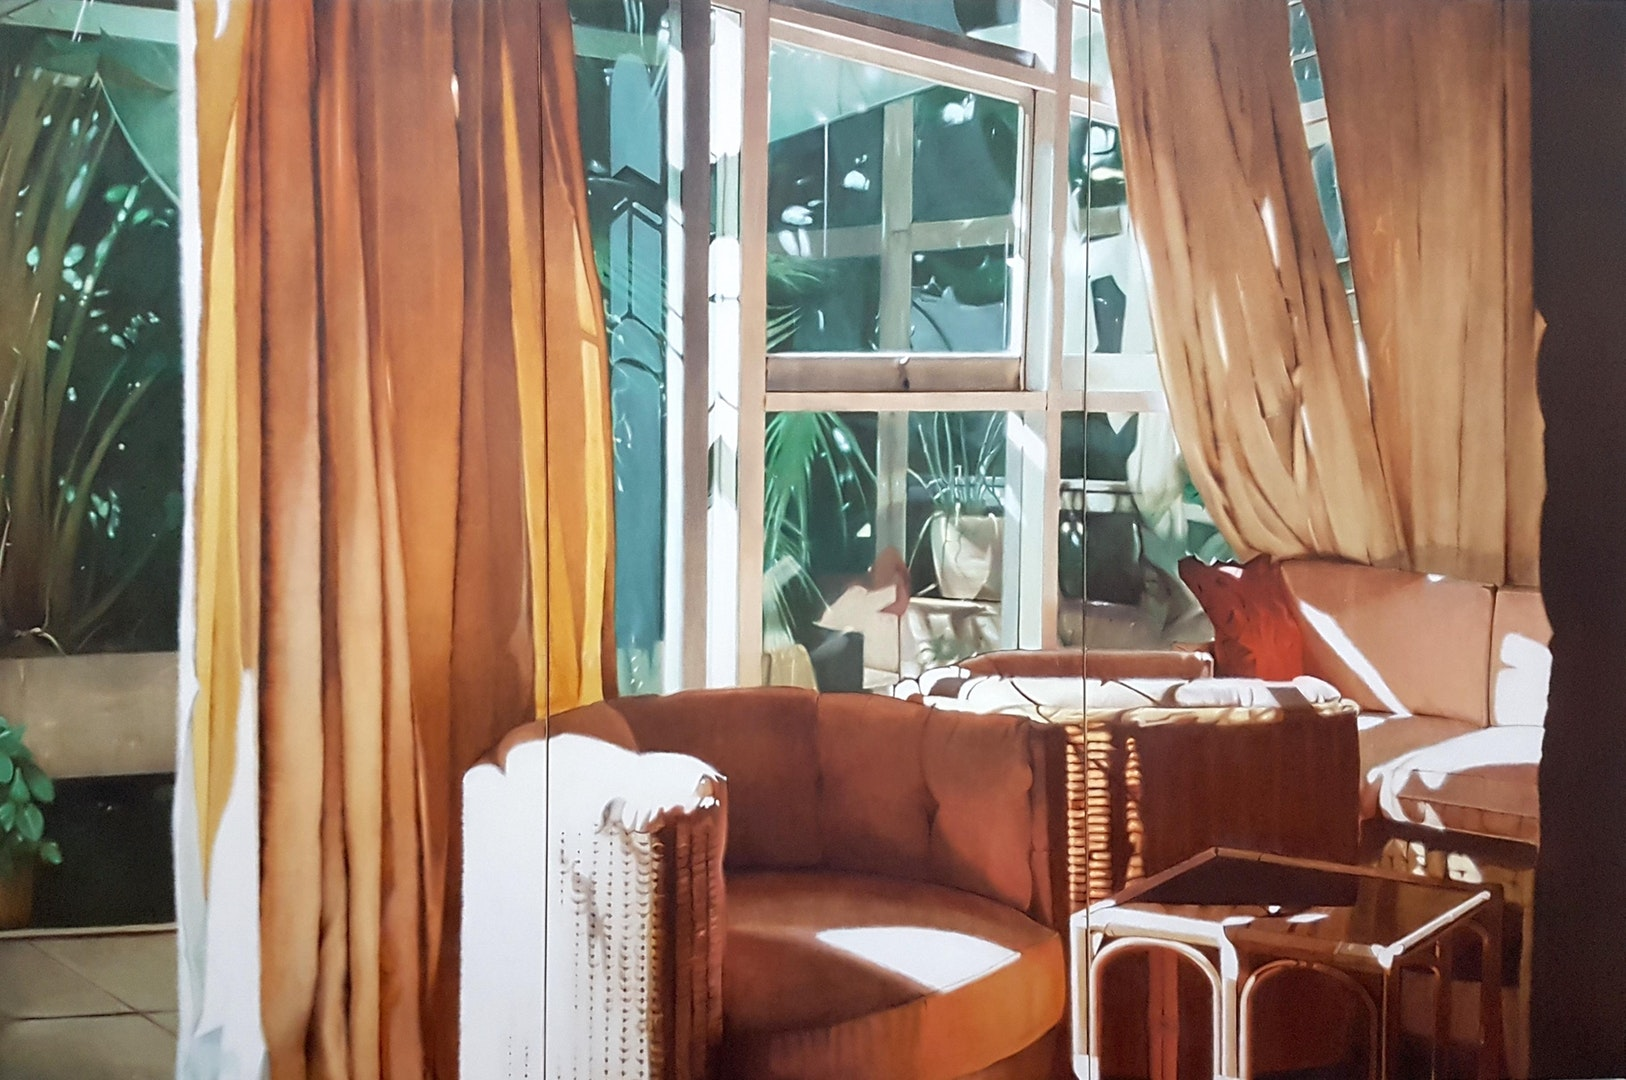 James Prapaithong  Interior with Bright Light  Oil on canvas, 200 x 300 x 5 cm  http://www.james-prapaithong.com